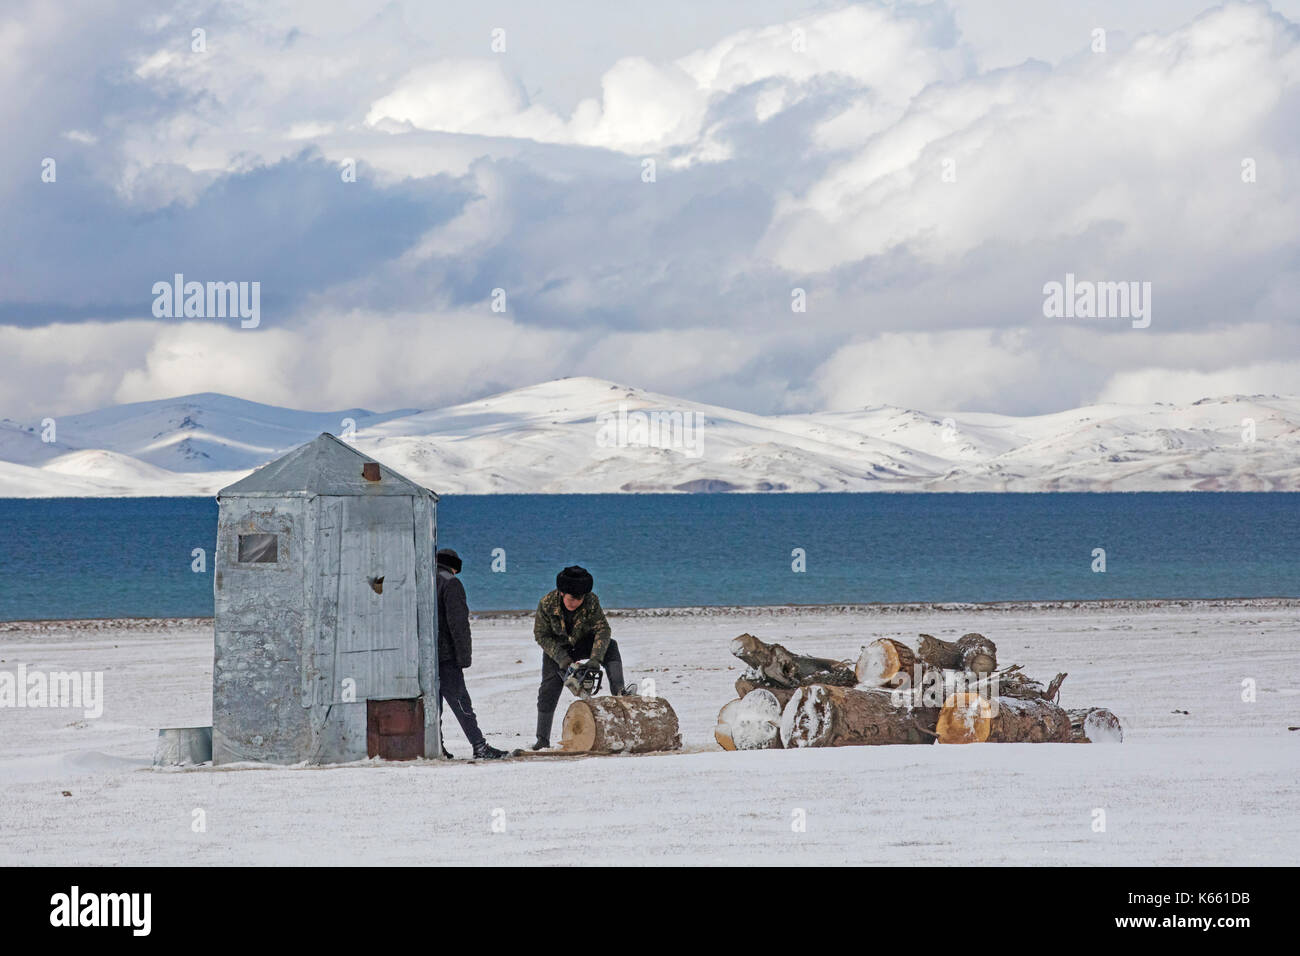 Kyrgyz men cutting wood with chainsaw in the snow along Song Kul / Song Kol lake in the Tian Shan Mountains, Naryn Province, Kyrgyzstan - Stock Image